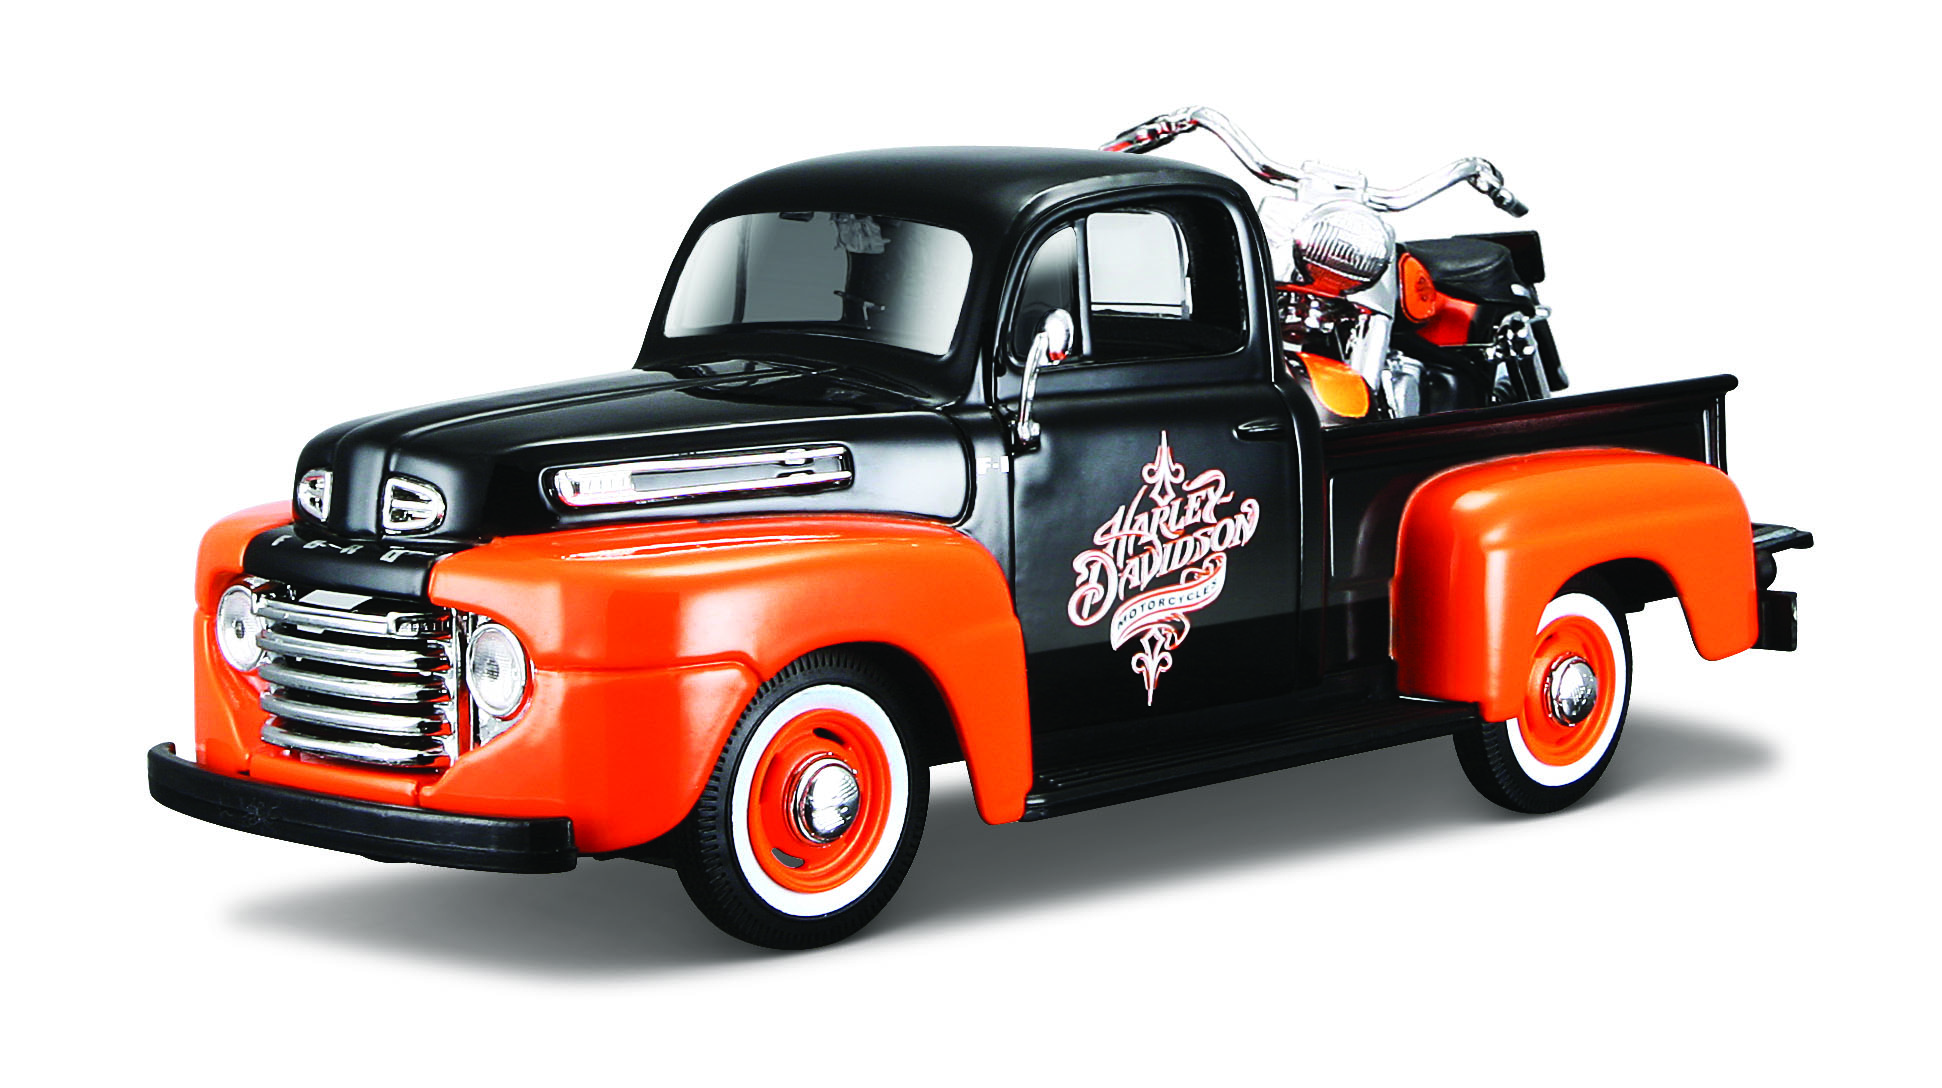 1958 FLH DUO GLIDE + 1948 FORD f1 PICKUP